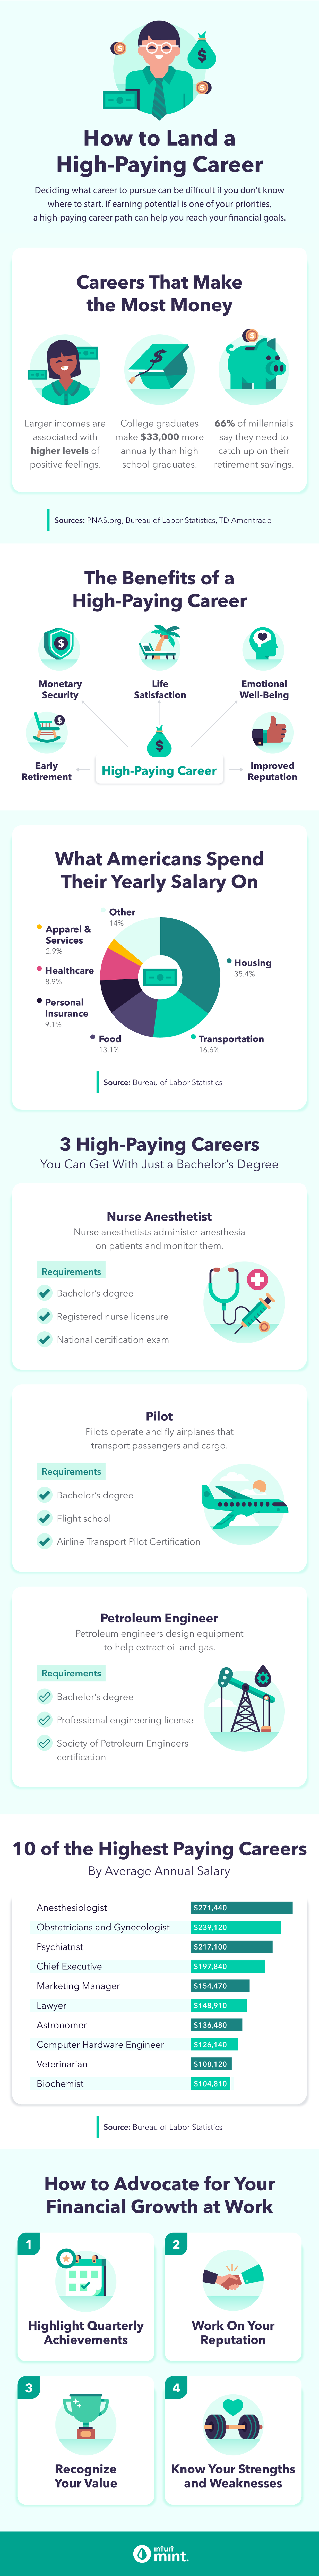 How to Land a High-Paying Career